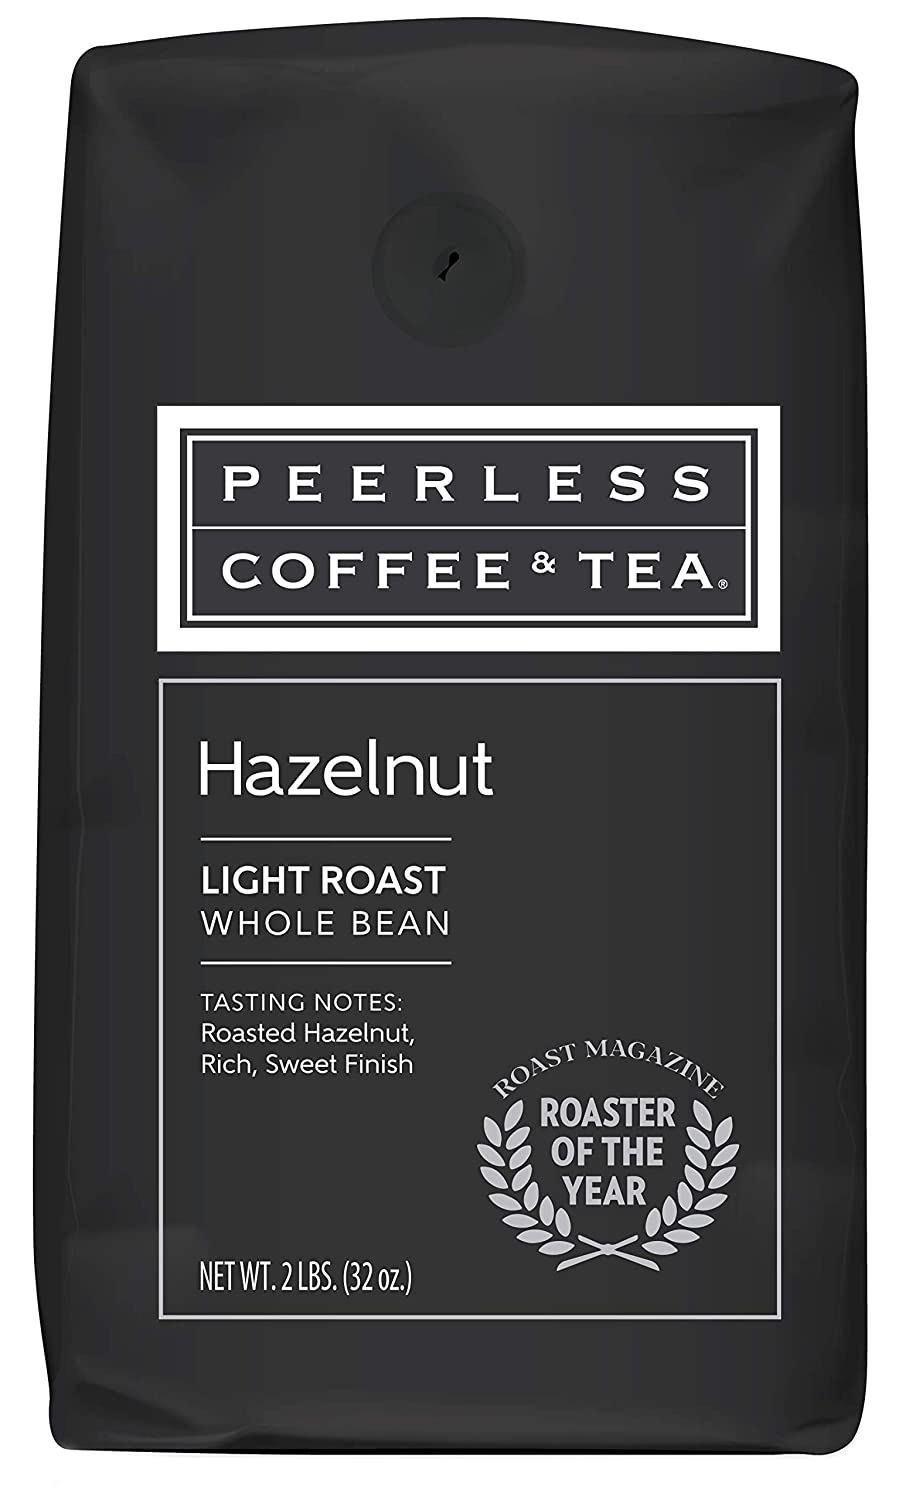 32oz Hazelnut, Whole Bean Coffee, Medium Roast, by Peerless Coffee & Tea